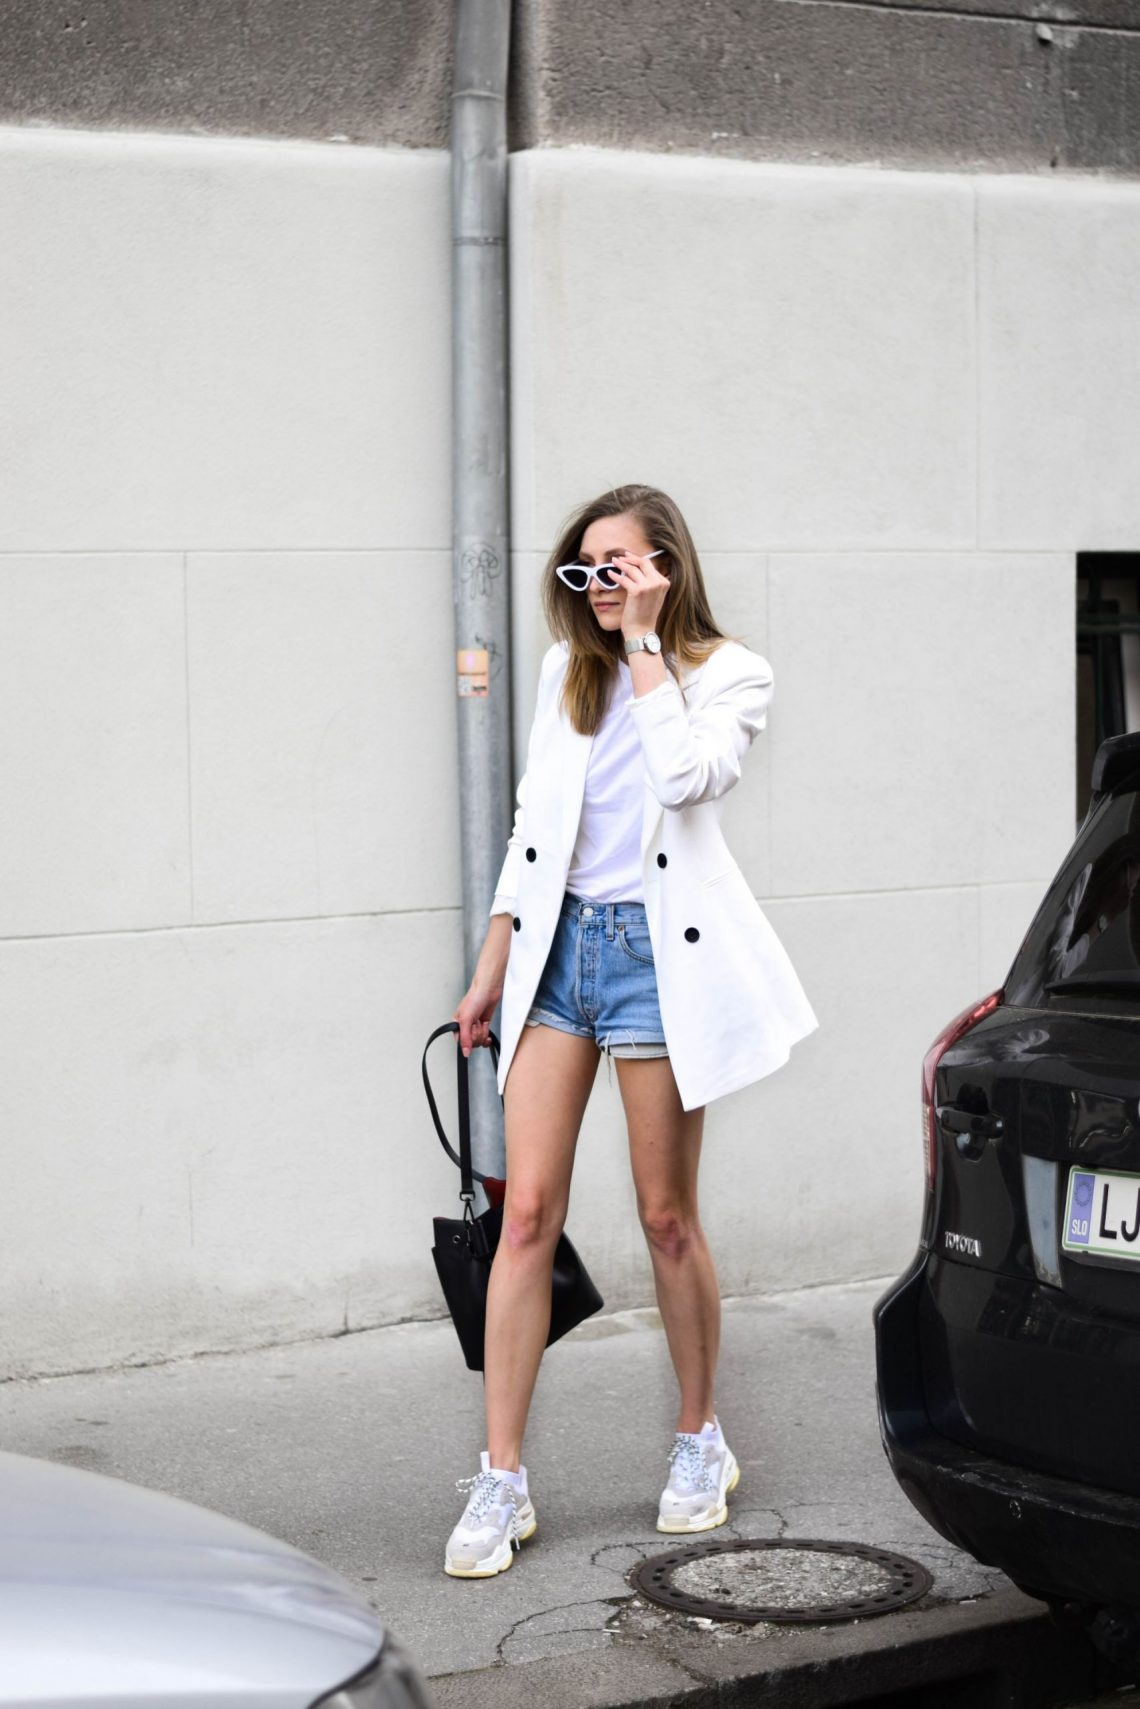 Steal Her Style: How To Wear Dad Sneakers?